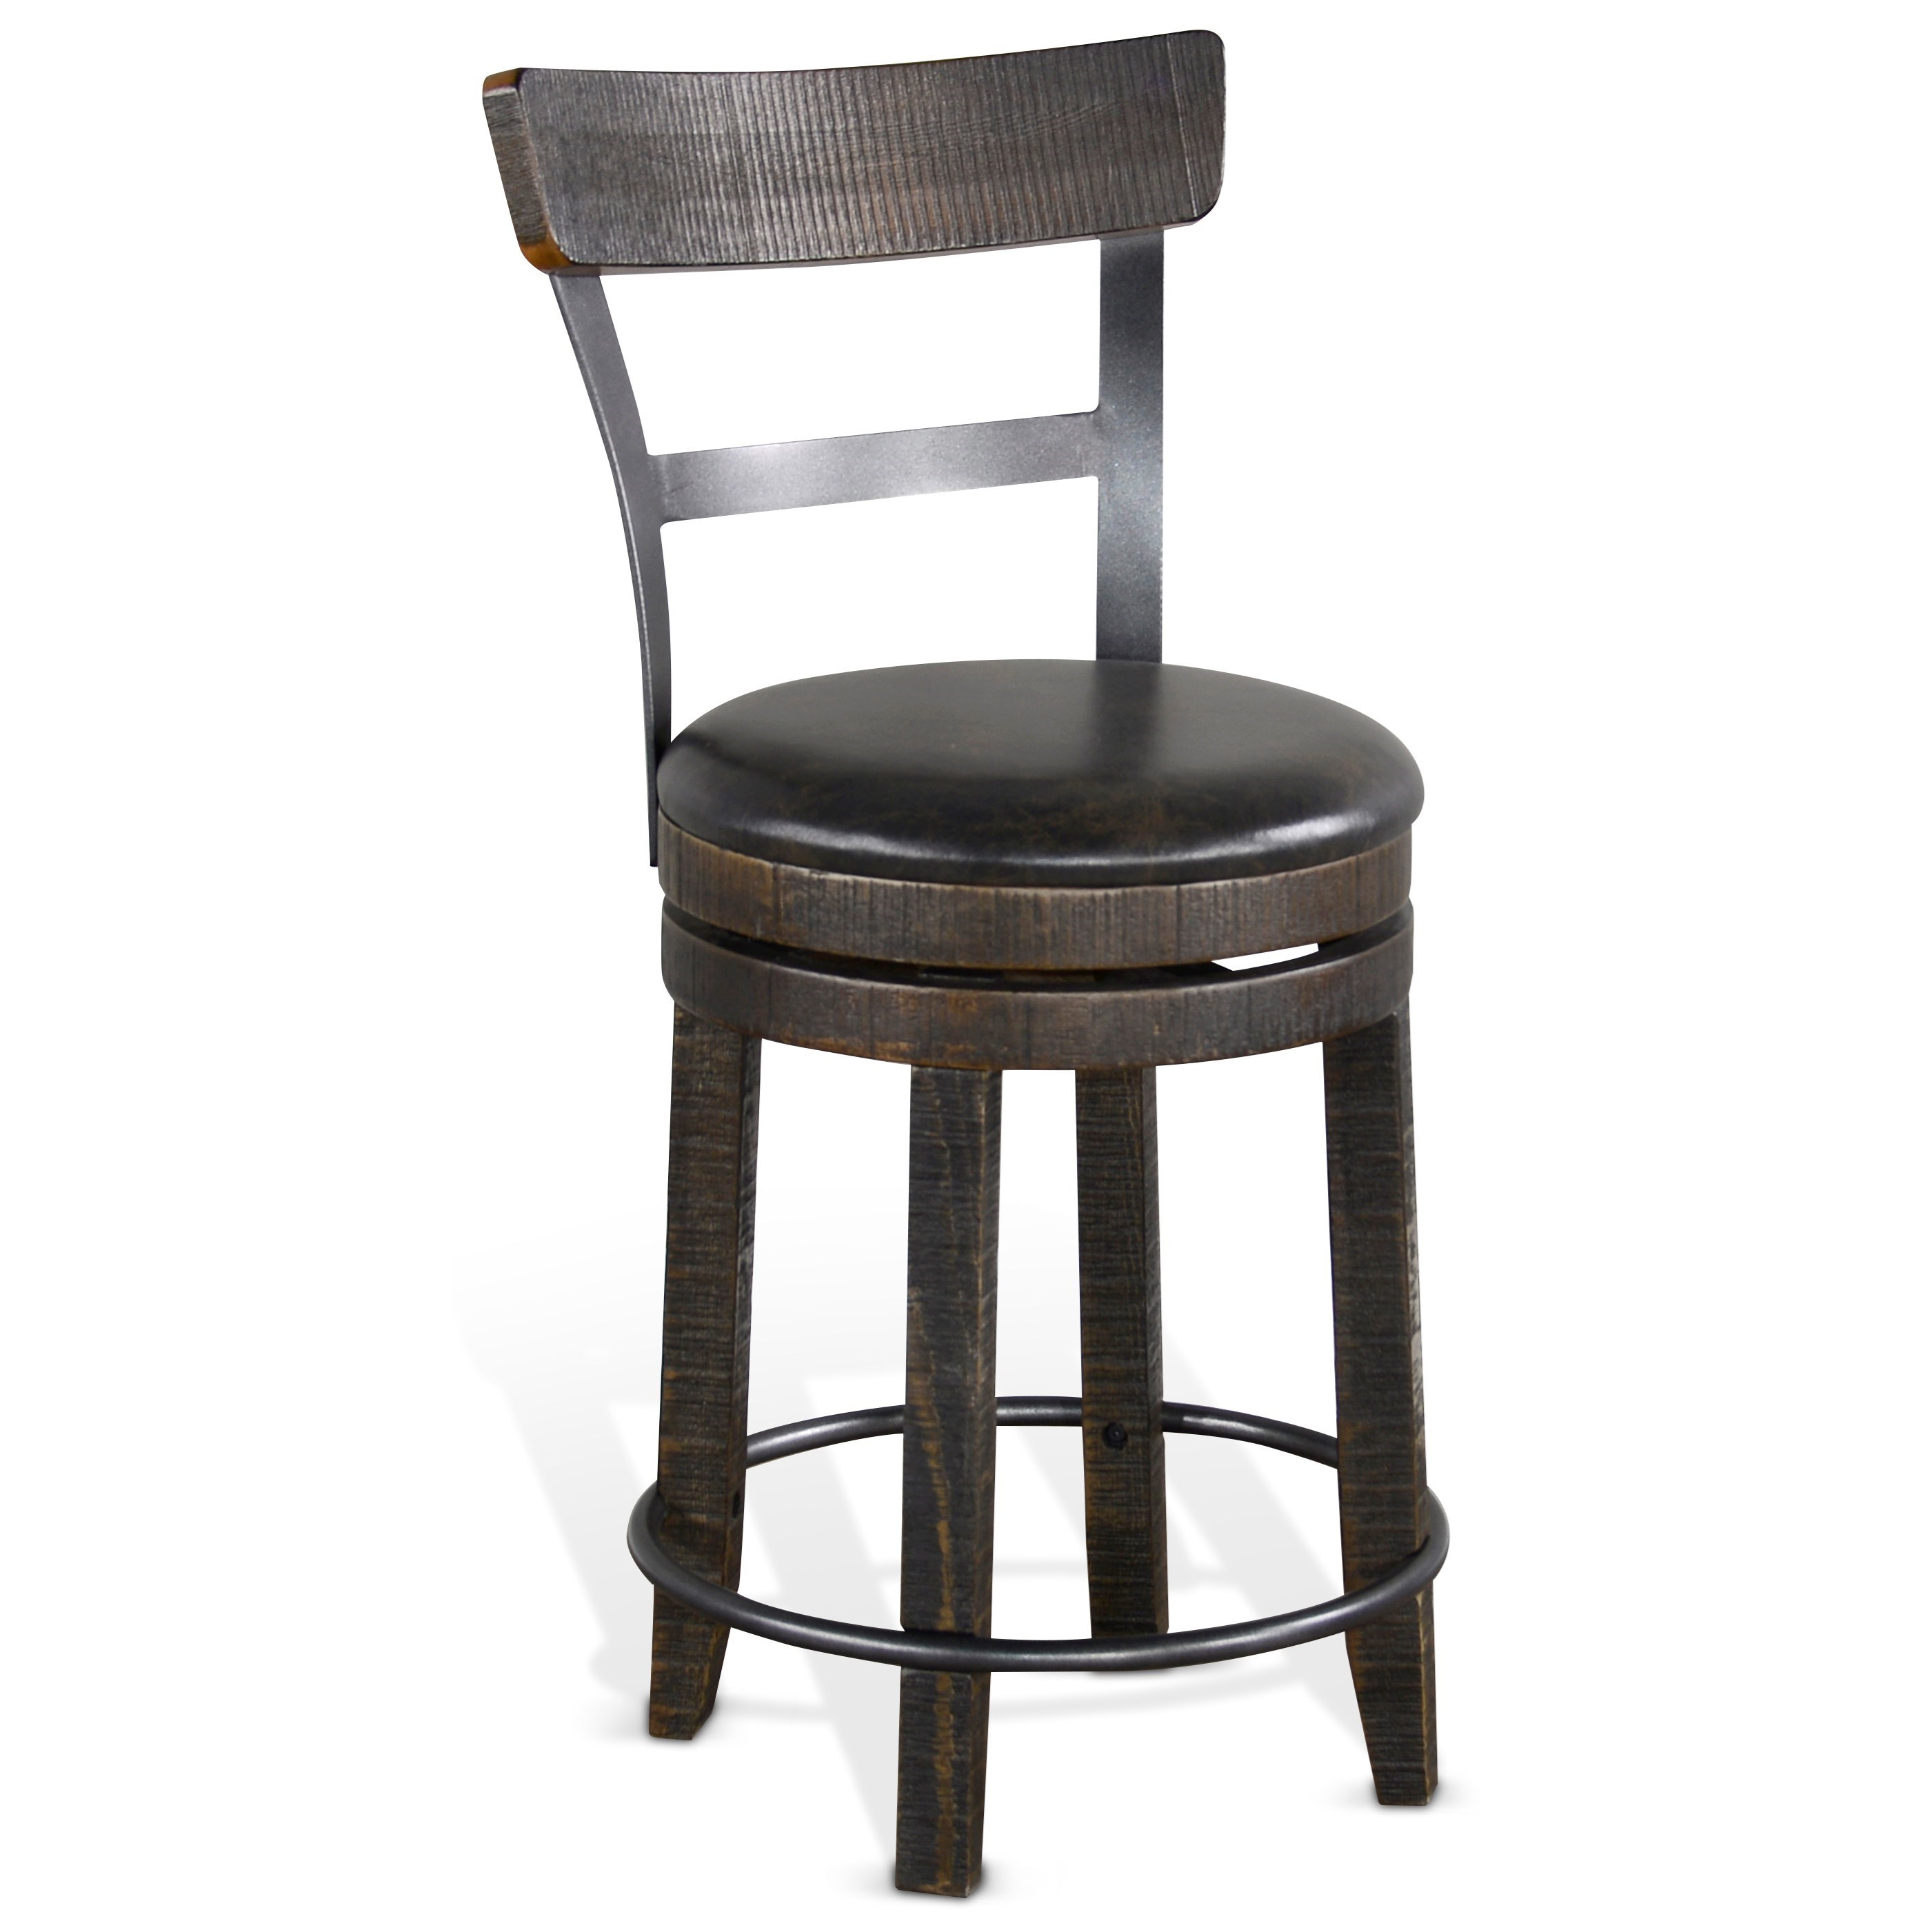 Homestead 2 swivel counter height bar stool by Sunny Designs at Walker's Furniture